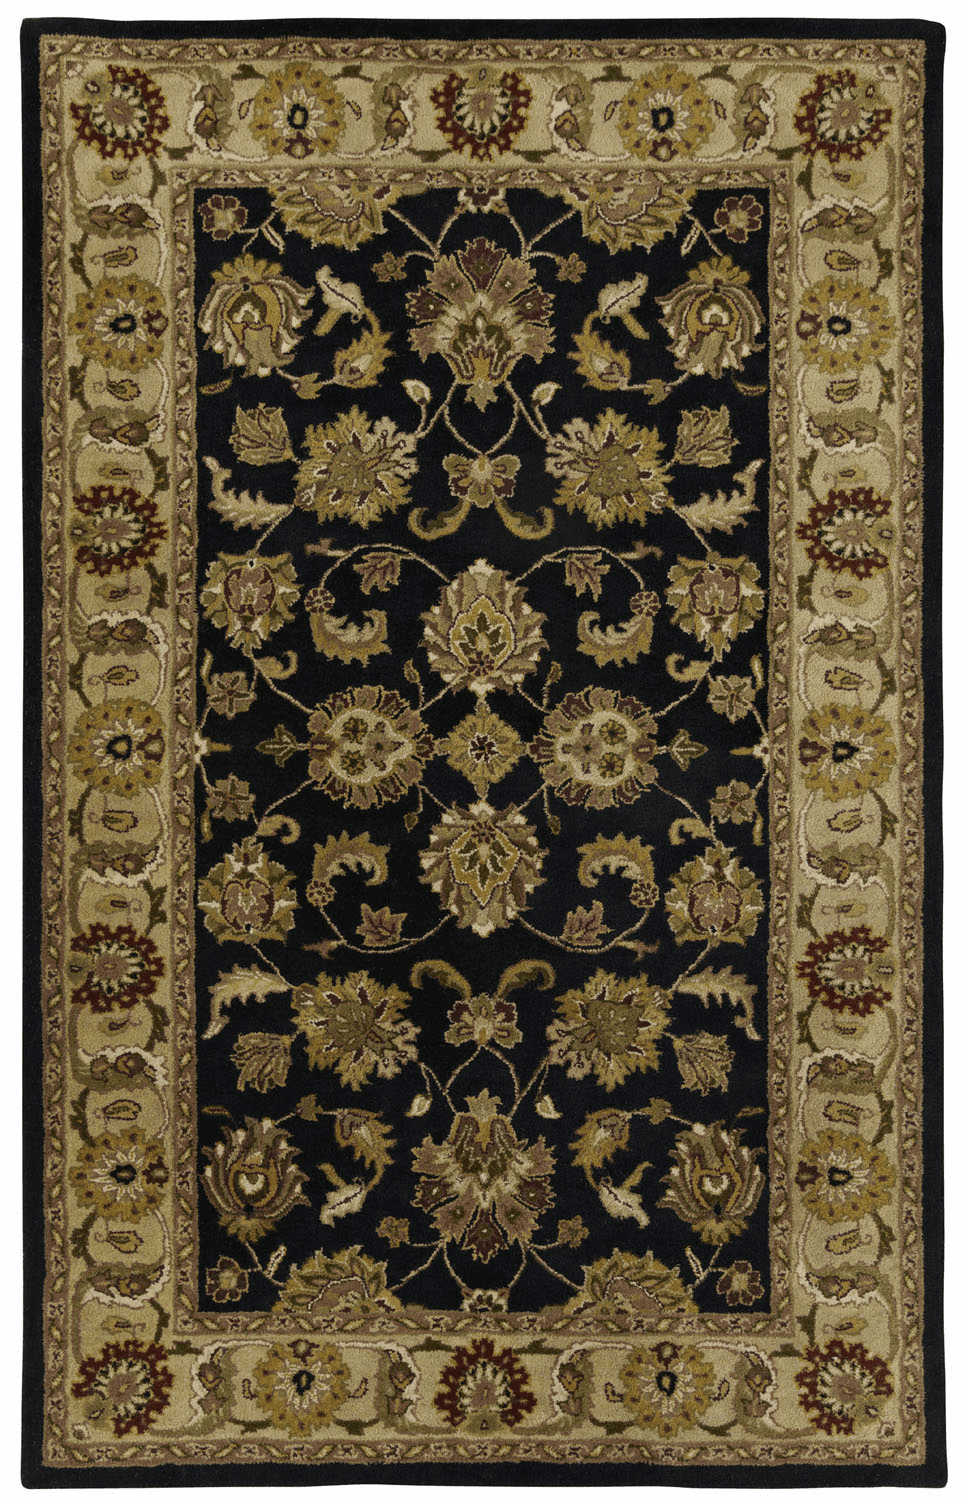 Hand Tufted Black Beige Rug